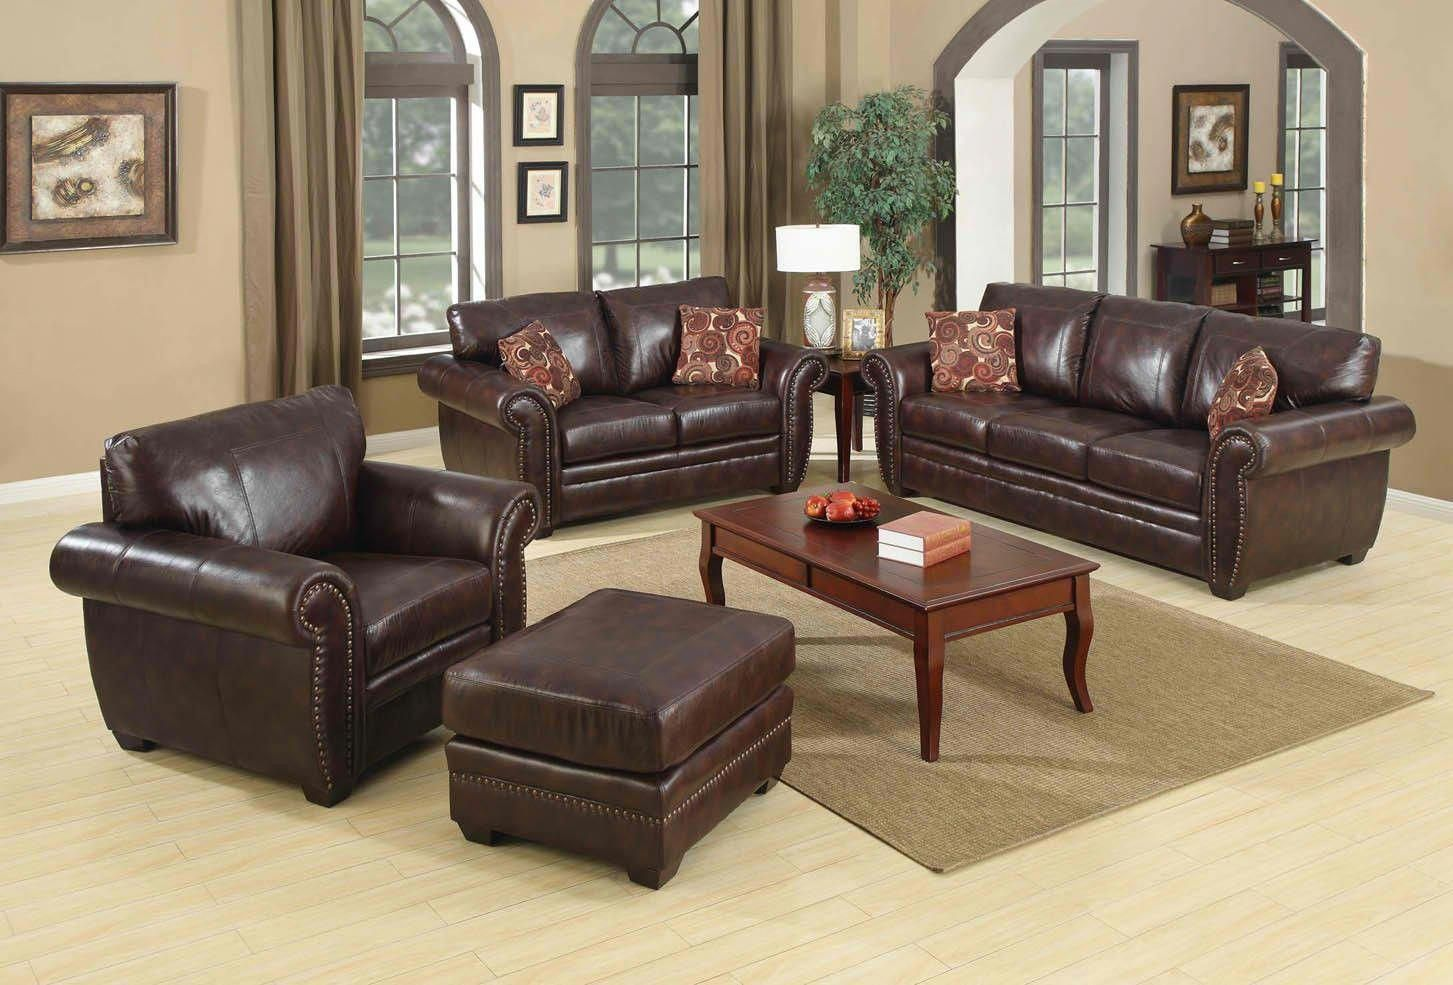 Tips That Help You Get The Best Leather Sofa Deal Brown Leather Couch Living Room Brown Furniture Living Room Brown Leather Sofa Living Room